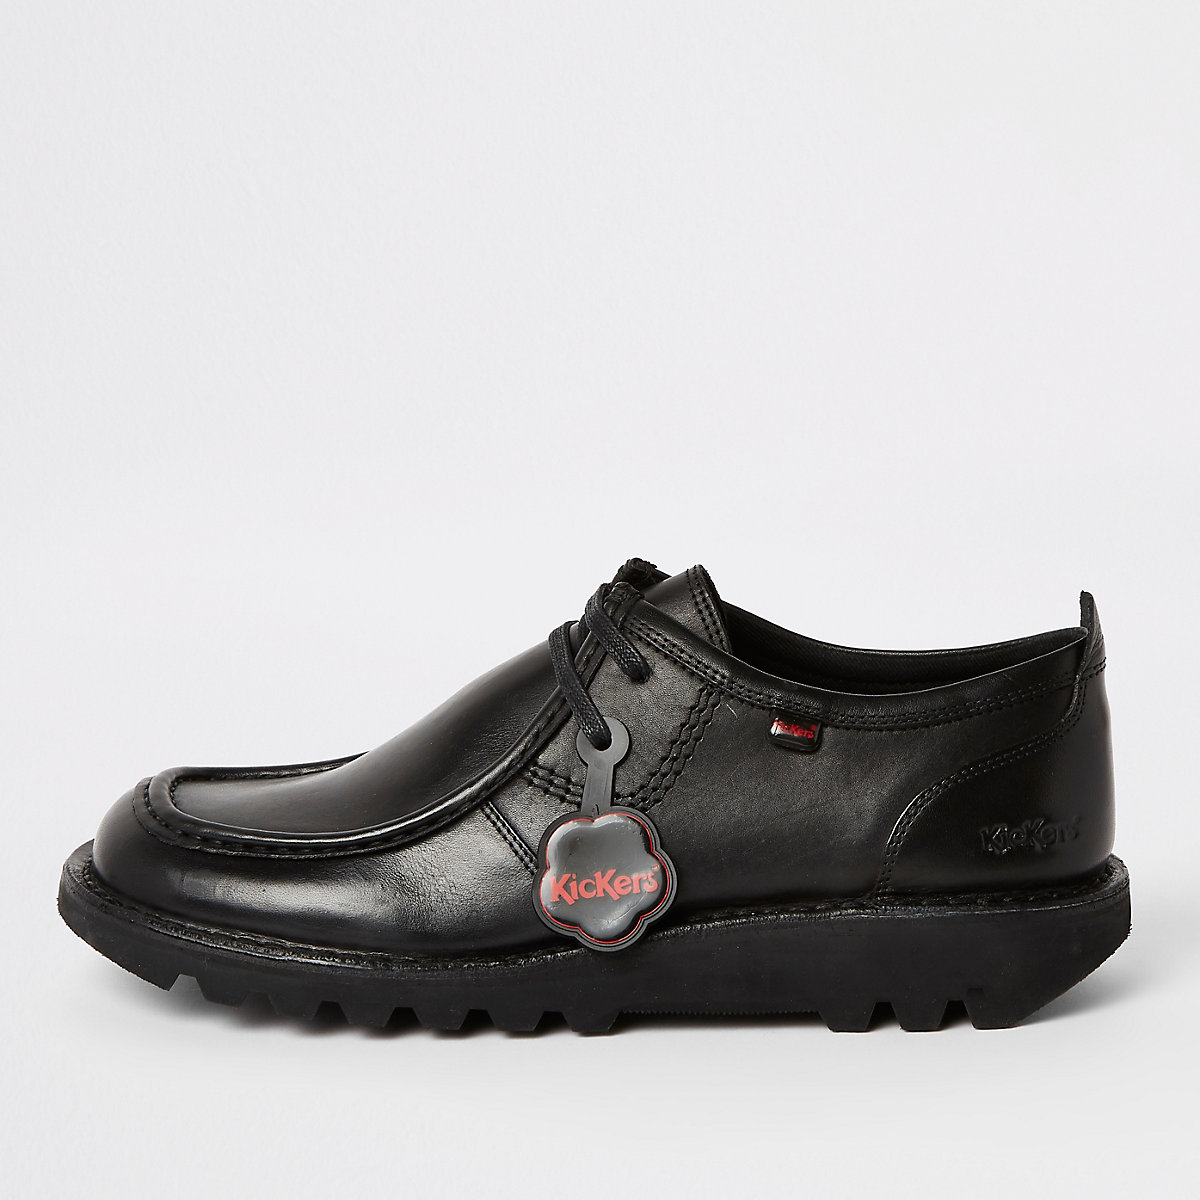 Kickers black leather low top shoes